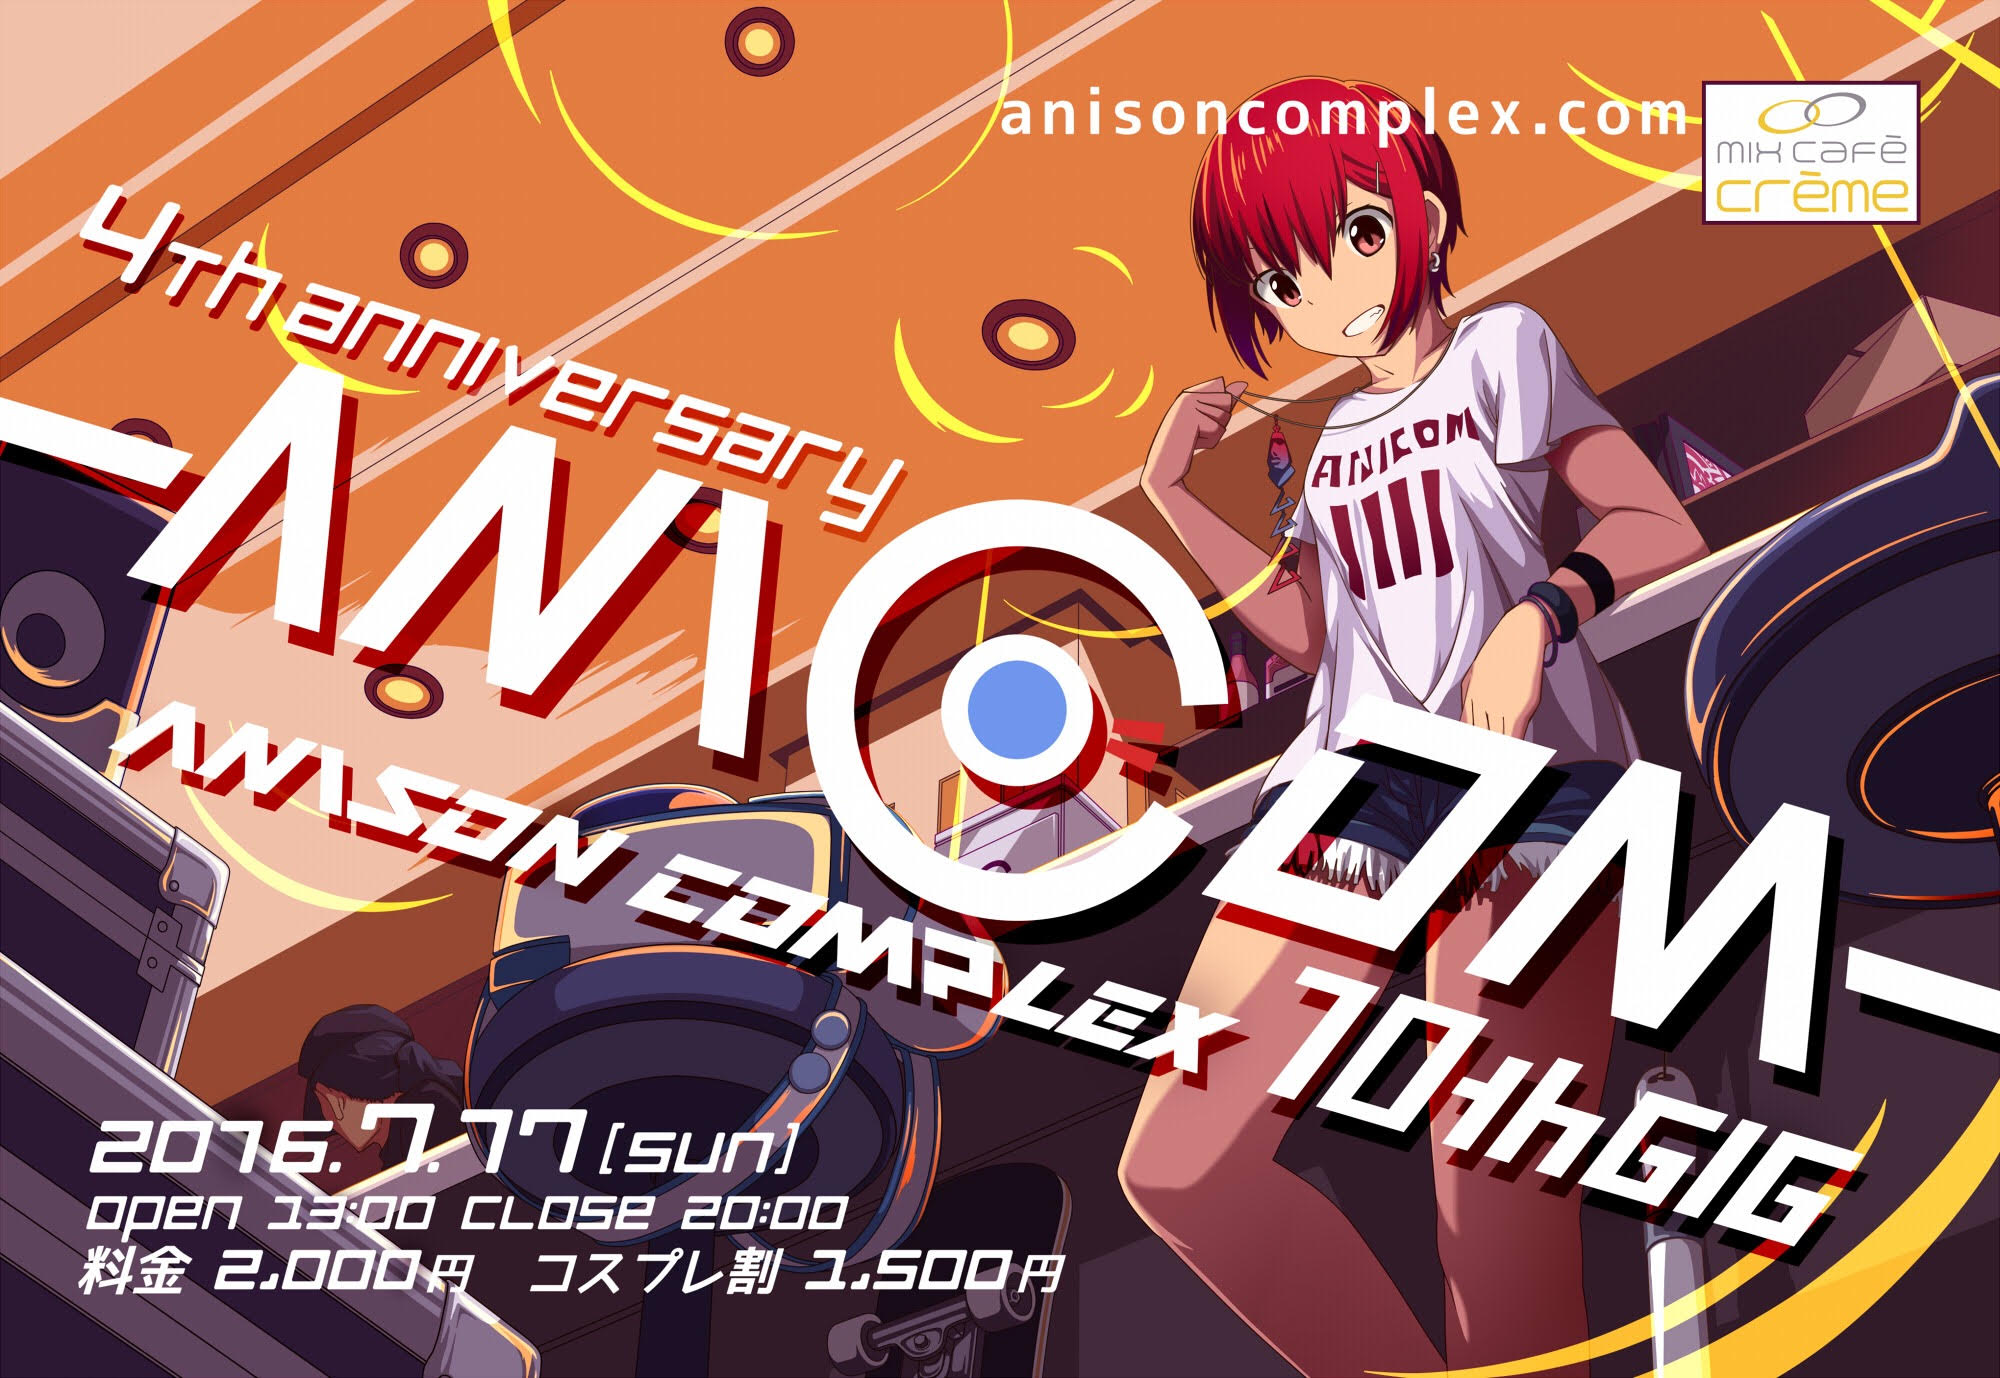 ANISON COMPLEX 10th GIG